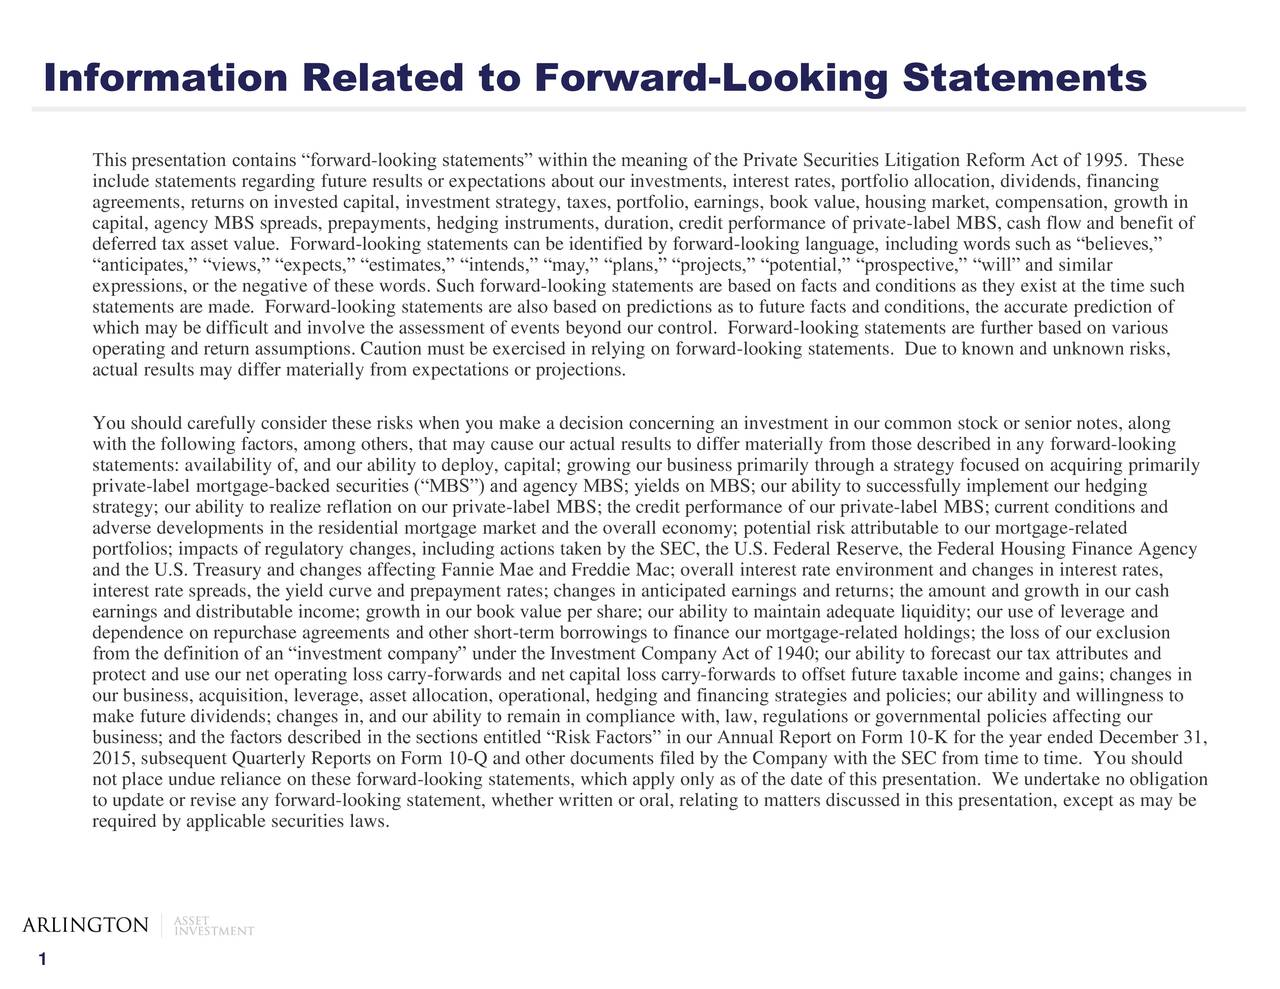 This presentation contains forward-looking statements within the meaning of the Private Securities Litigation Reform Act of 1995. These include statements regarding future results or expectations about our investments, interest rates, portfolio allocation, dividends, financing agreements, returns on invested capital, investment strategy, taxes, portfolio, earnings, book value, housing market, compensation, growth in capital, agency MBS spreads, prepayments, hedging instruments, duration, credit performance of private-label MBS, cash flow and benefit of deferred tax asset value. Forward-looking statements can be identified by forward-looking language, including words such as believes, anticipates, views, expects, estimates, intends, may, plans, projects, potential, prospective, will and similar expressions, or the negative of these words. Such forward-looking statements are based on facts and conditions as they exist at the time such statements are made. Forward-looking statements are also based on predictions as to future facts and conditions, the accurate prediction of which may be difficult and involve the assessment of events beyond our control. Forward-looking statements are further based on various operating and return assumptions. Caution must be exercised in relying on forward-looking statements. Due to known and unknown risks, actual results may differ materially from expectations or projections. You should carefully consider these risks when you make a decision concerning an investment in our common stock or senior notes, along with the following factors, among others, that may cause our actual results to differ materially from those described in any forward-looking statements: availability of, and our ability to deploy, capital; growing our business primarily through a strategy focused on acquiring primarily private-label mortgage-backed securities (MBS) and agency MBS; yields on MBS; our ability to successfully implement our hedging strategy; our ability 